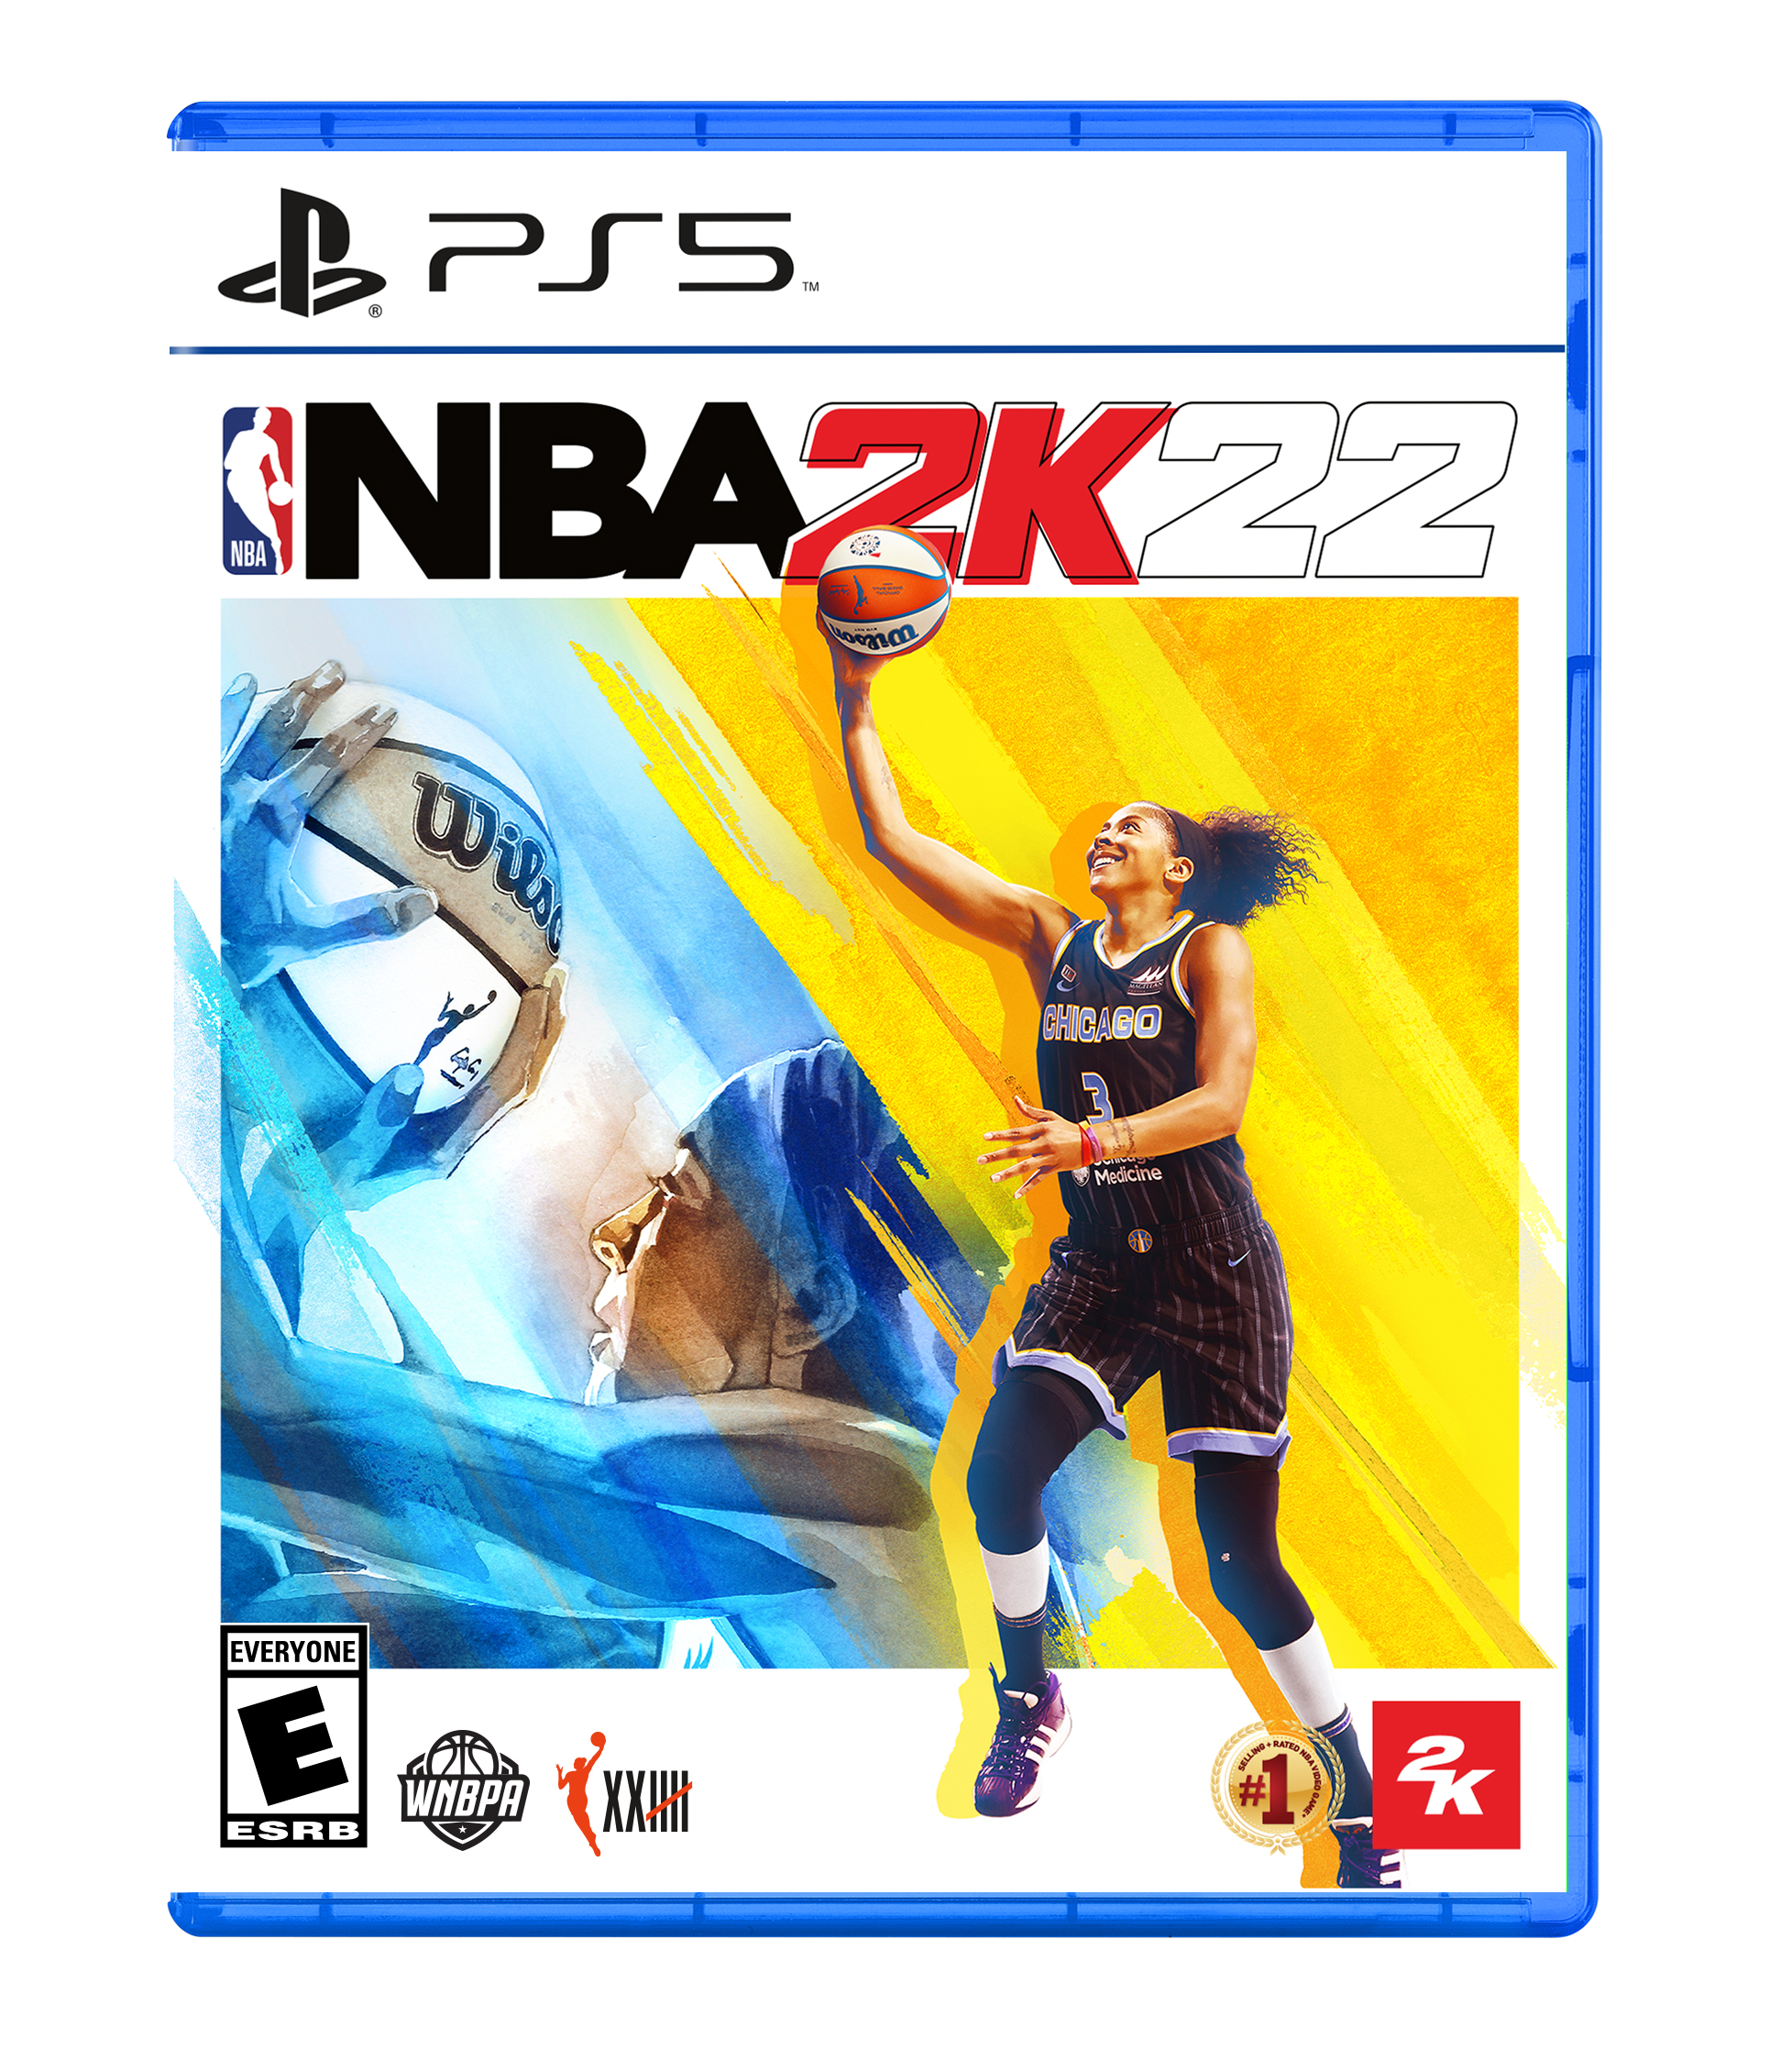 NBA 2K22 Cover Art and Reveal